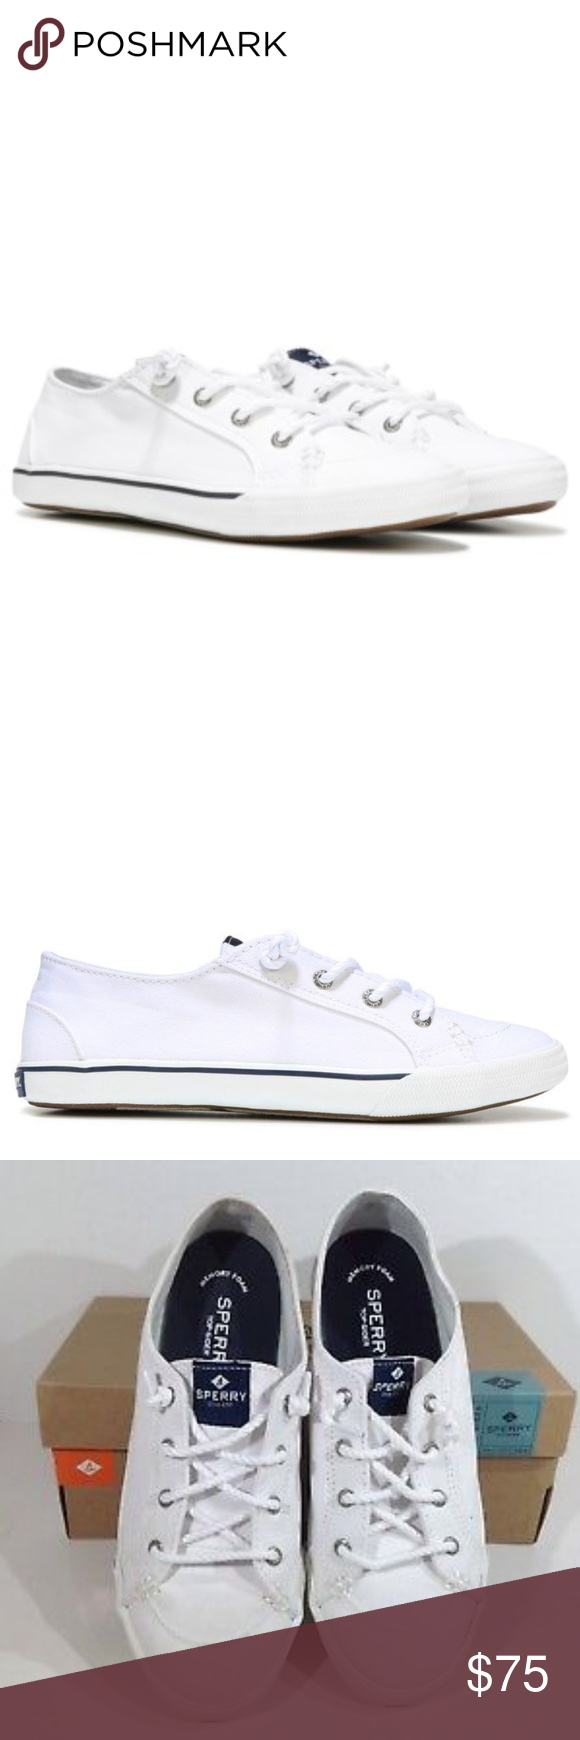 NWT Sperry Lounge LTT White Sneakers